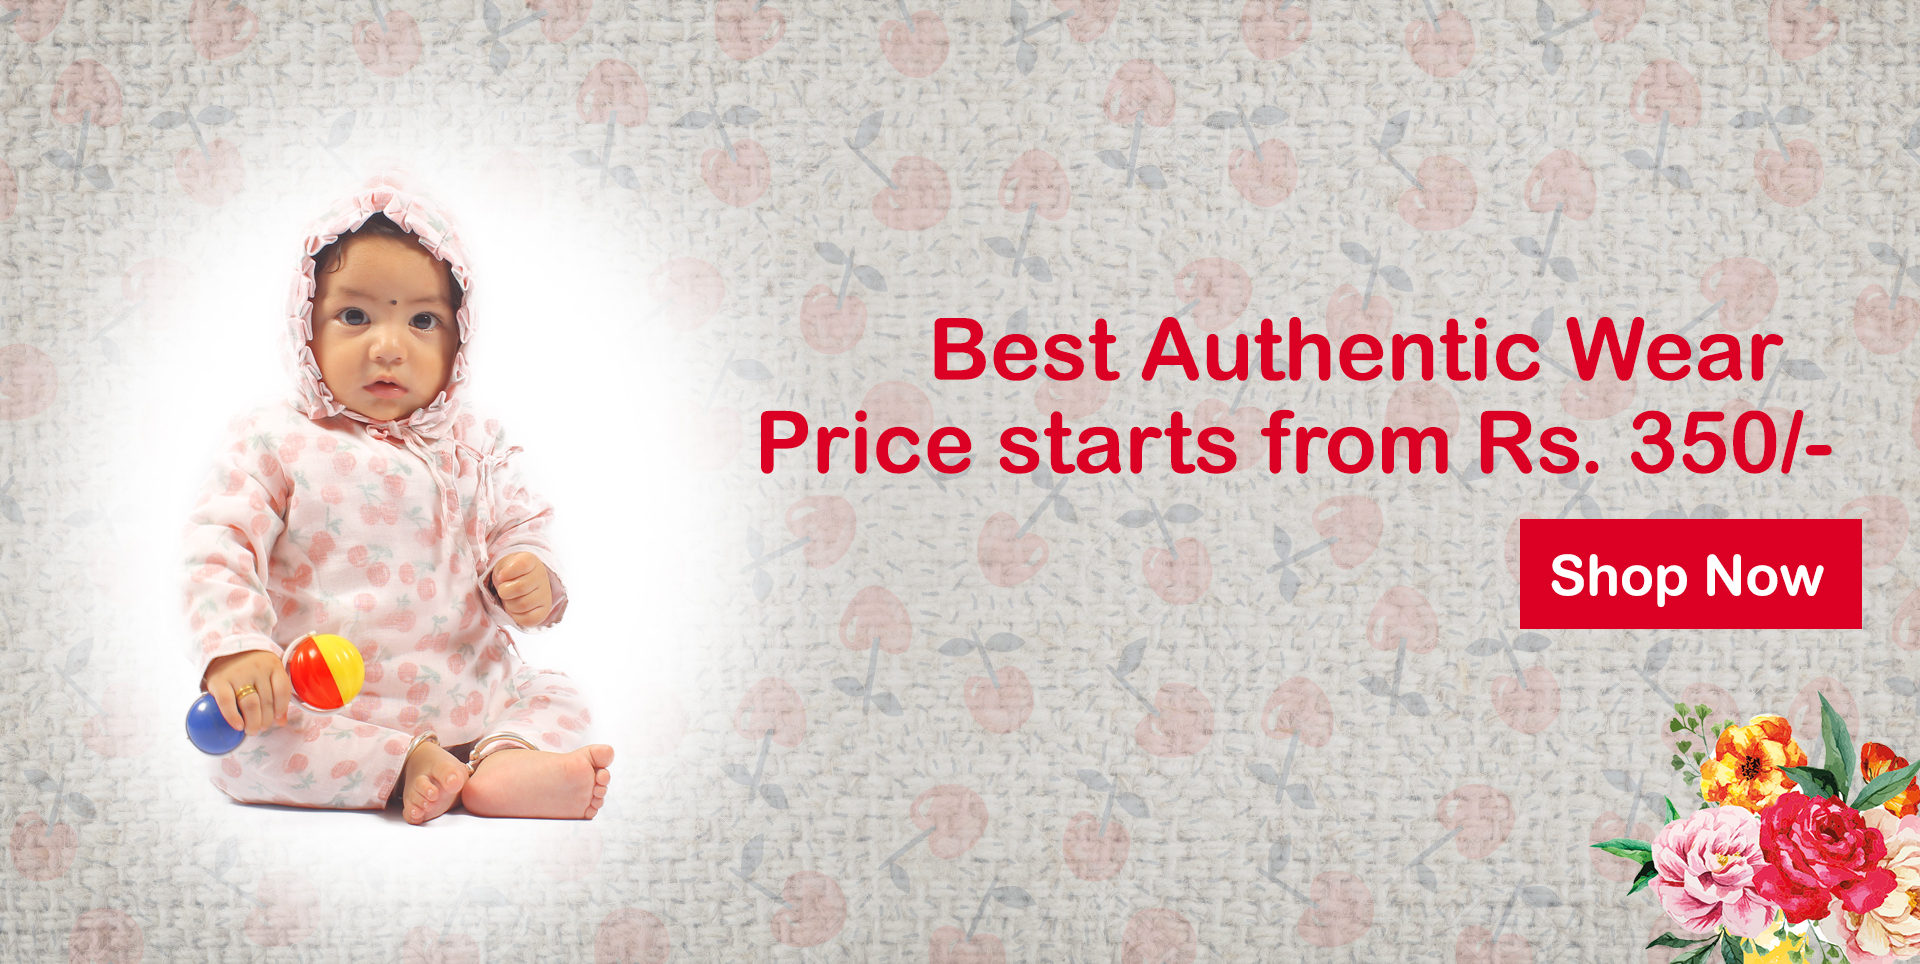 Best Authentic Wear - Price starts from Rs. 350/-